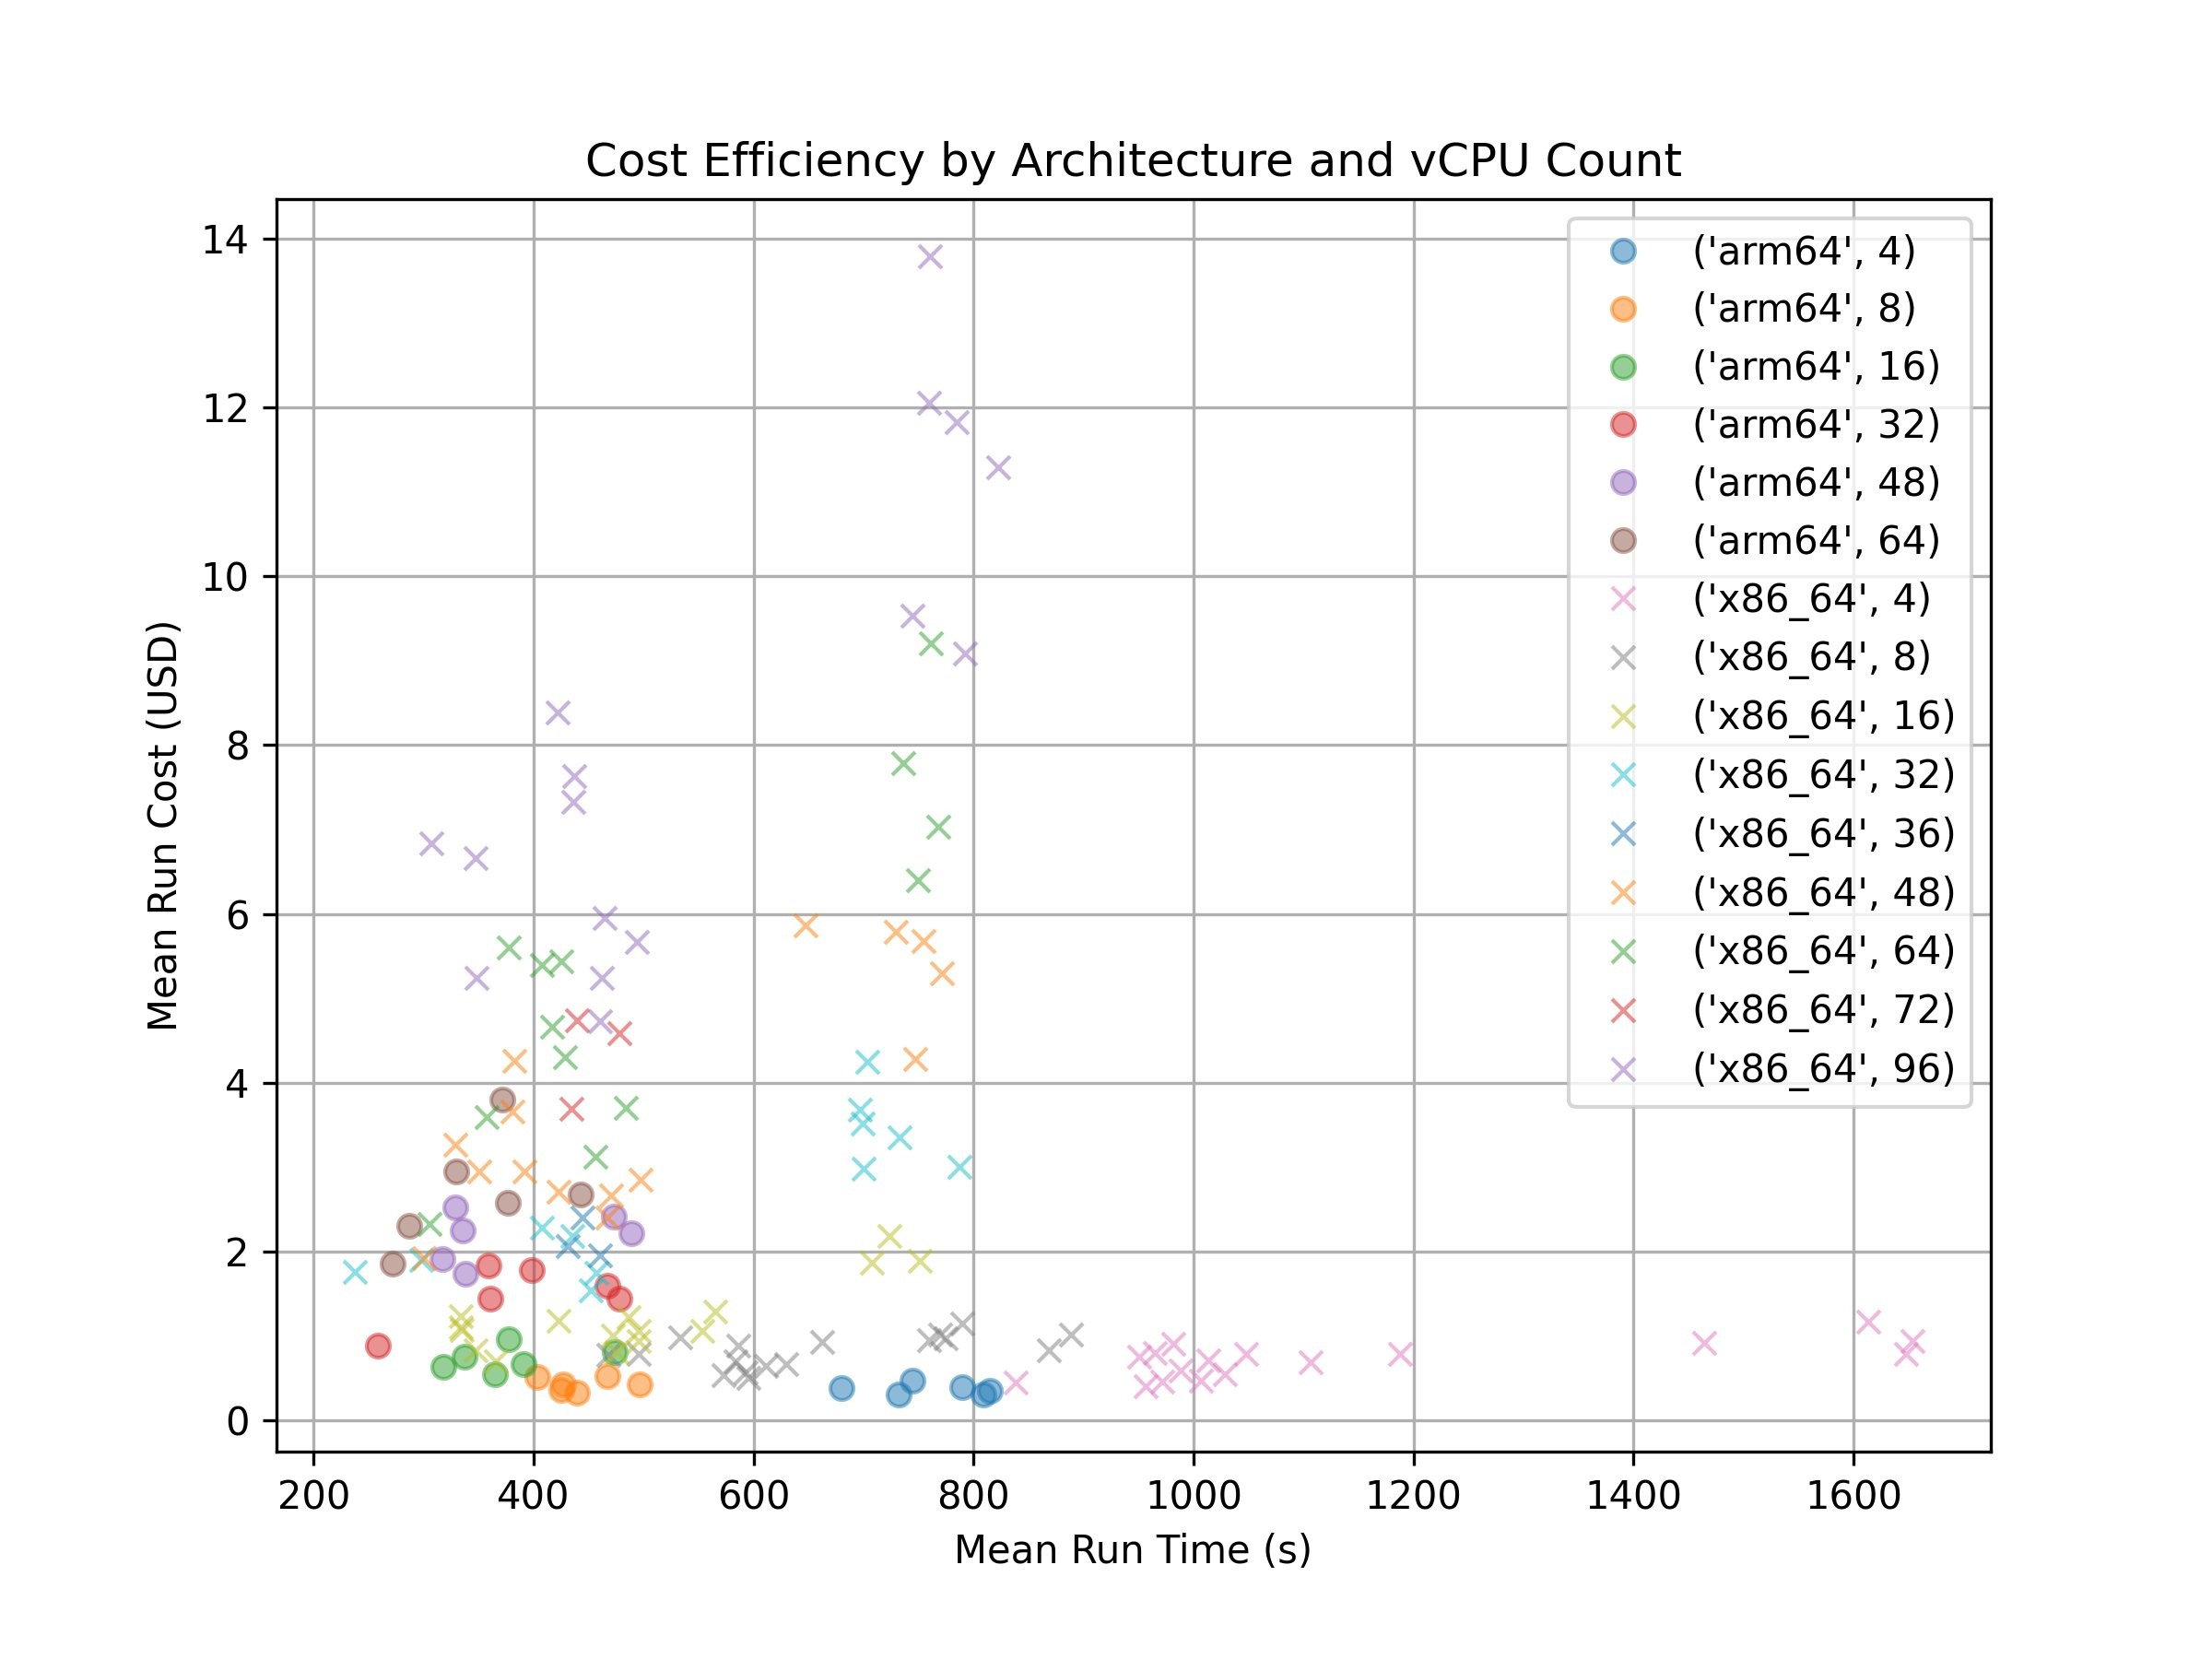 Figure 2: Cost efficiency by vCPU, dots are for arm64 instances and crosses are for x86_64 instances